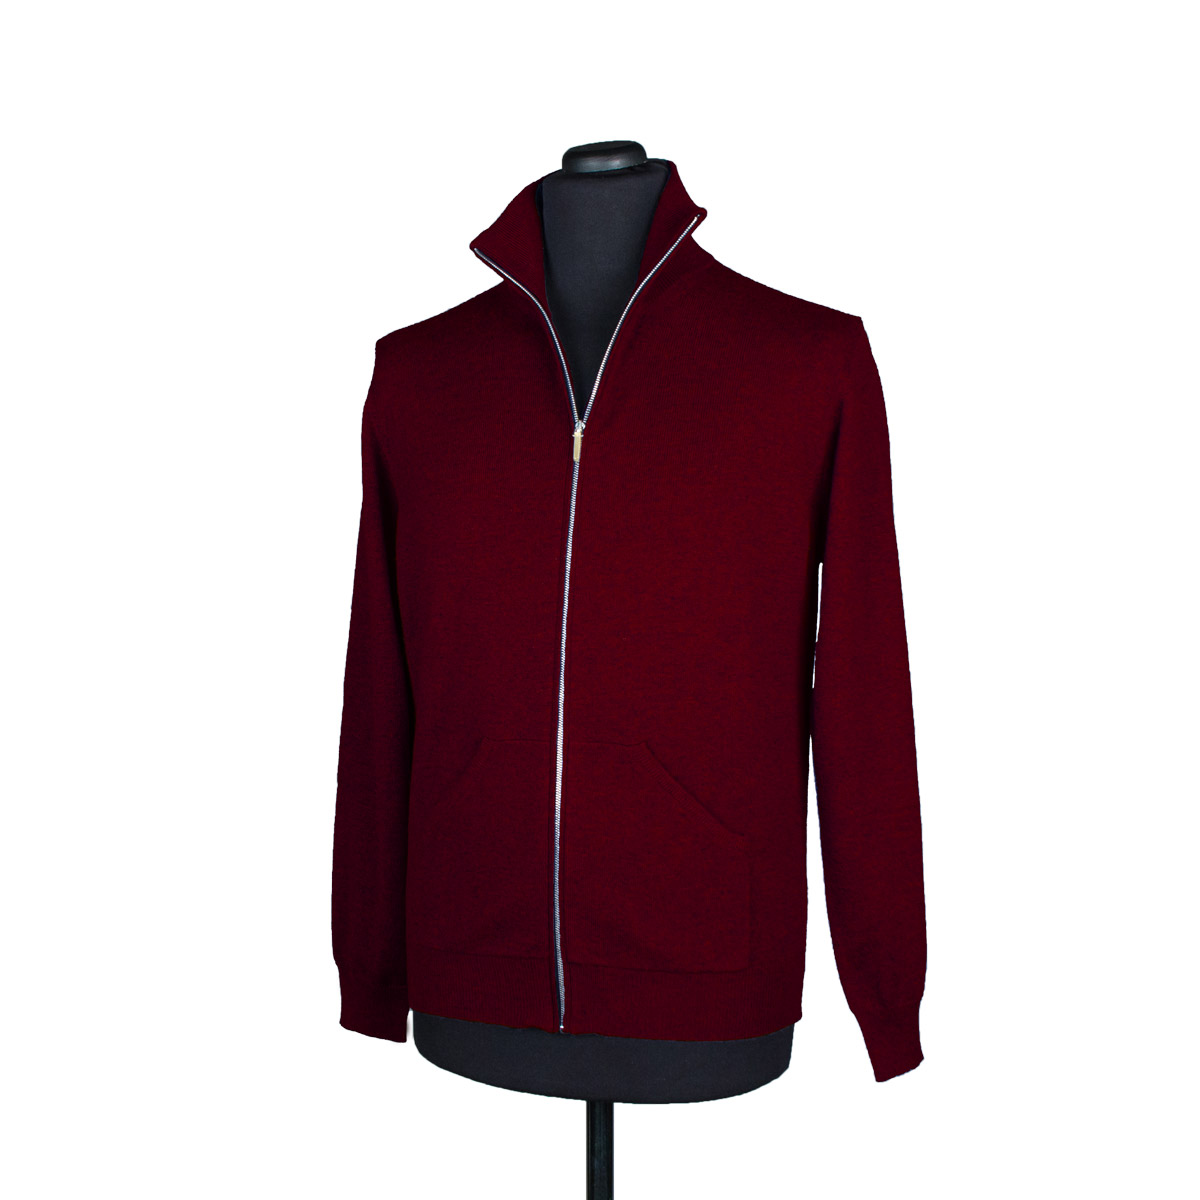 Mens zip up cashmere cardigan with pockets, burgundy - DiFranco ...